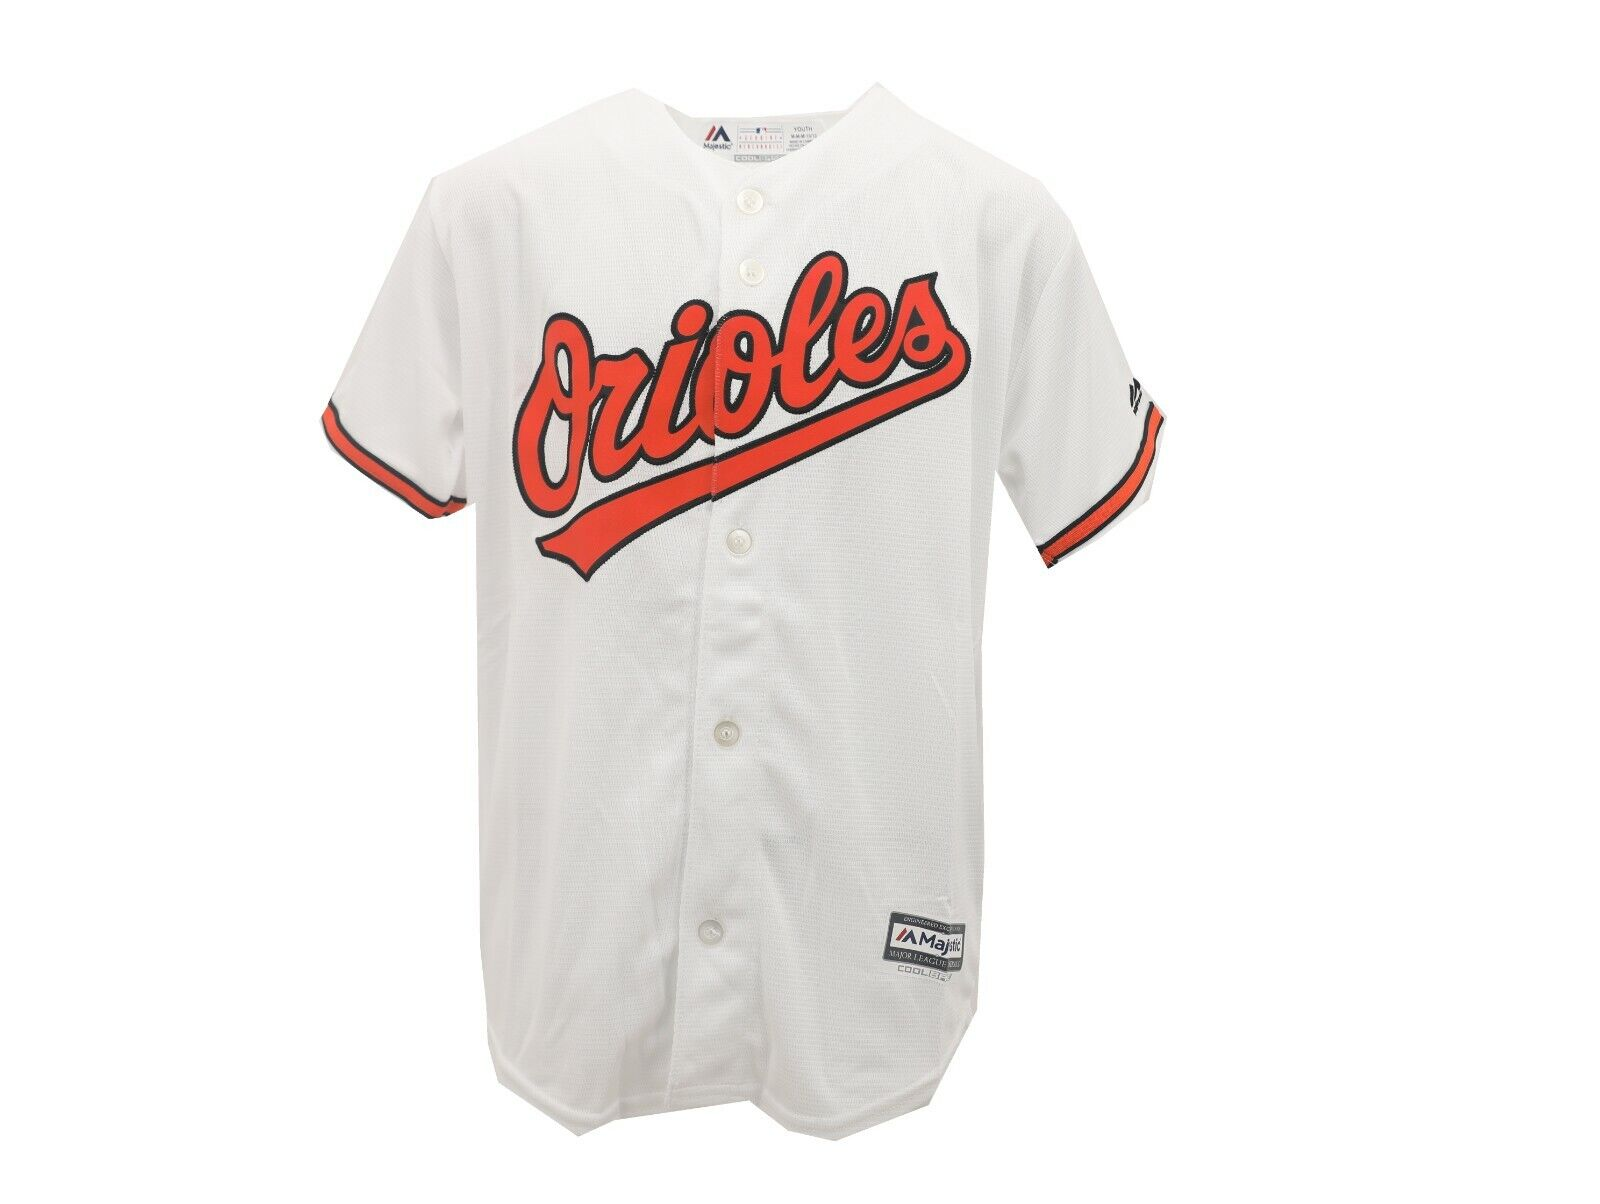 730da33fcef Baltimore Orioles MLB Majestic Cool Base Kids Youth Size J. J. Hardy Jersey  New